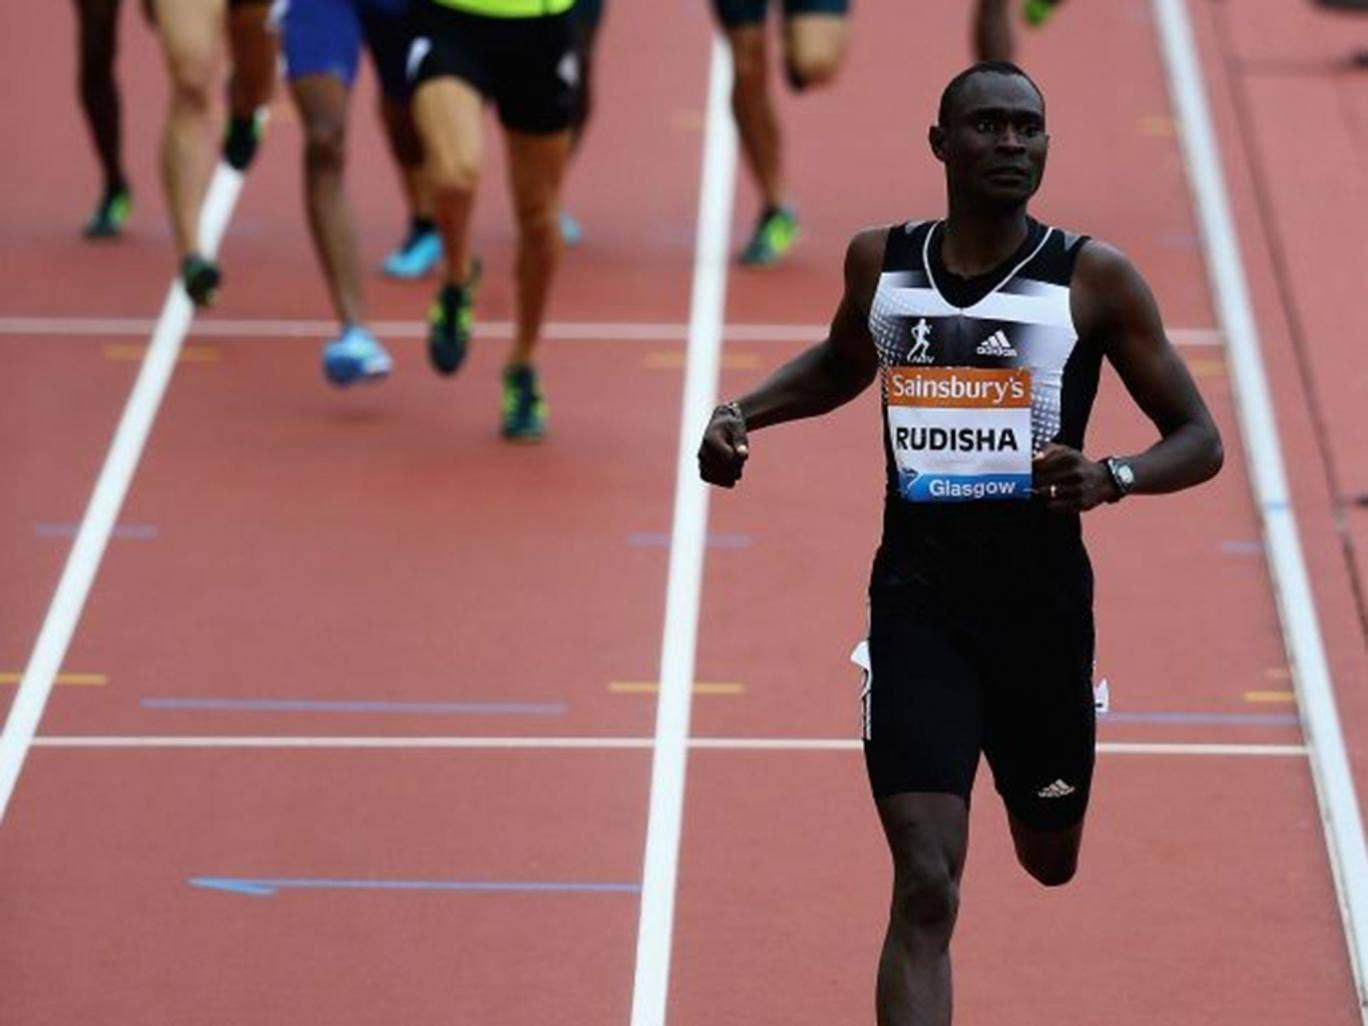 Rude awakening: After not running at all last year, David Rudisha was 2.5sec off his 2012 world record. But he still left the rest trailing in his wake